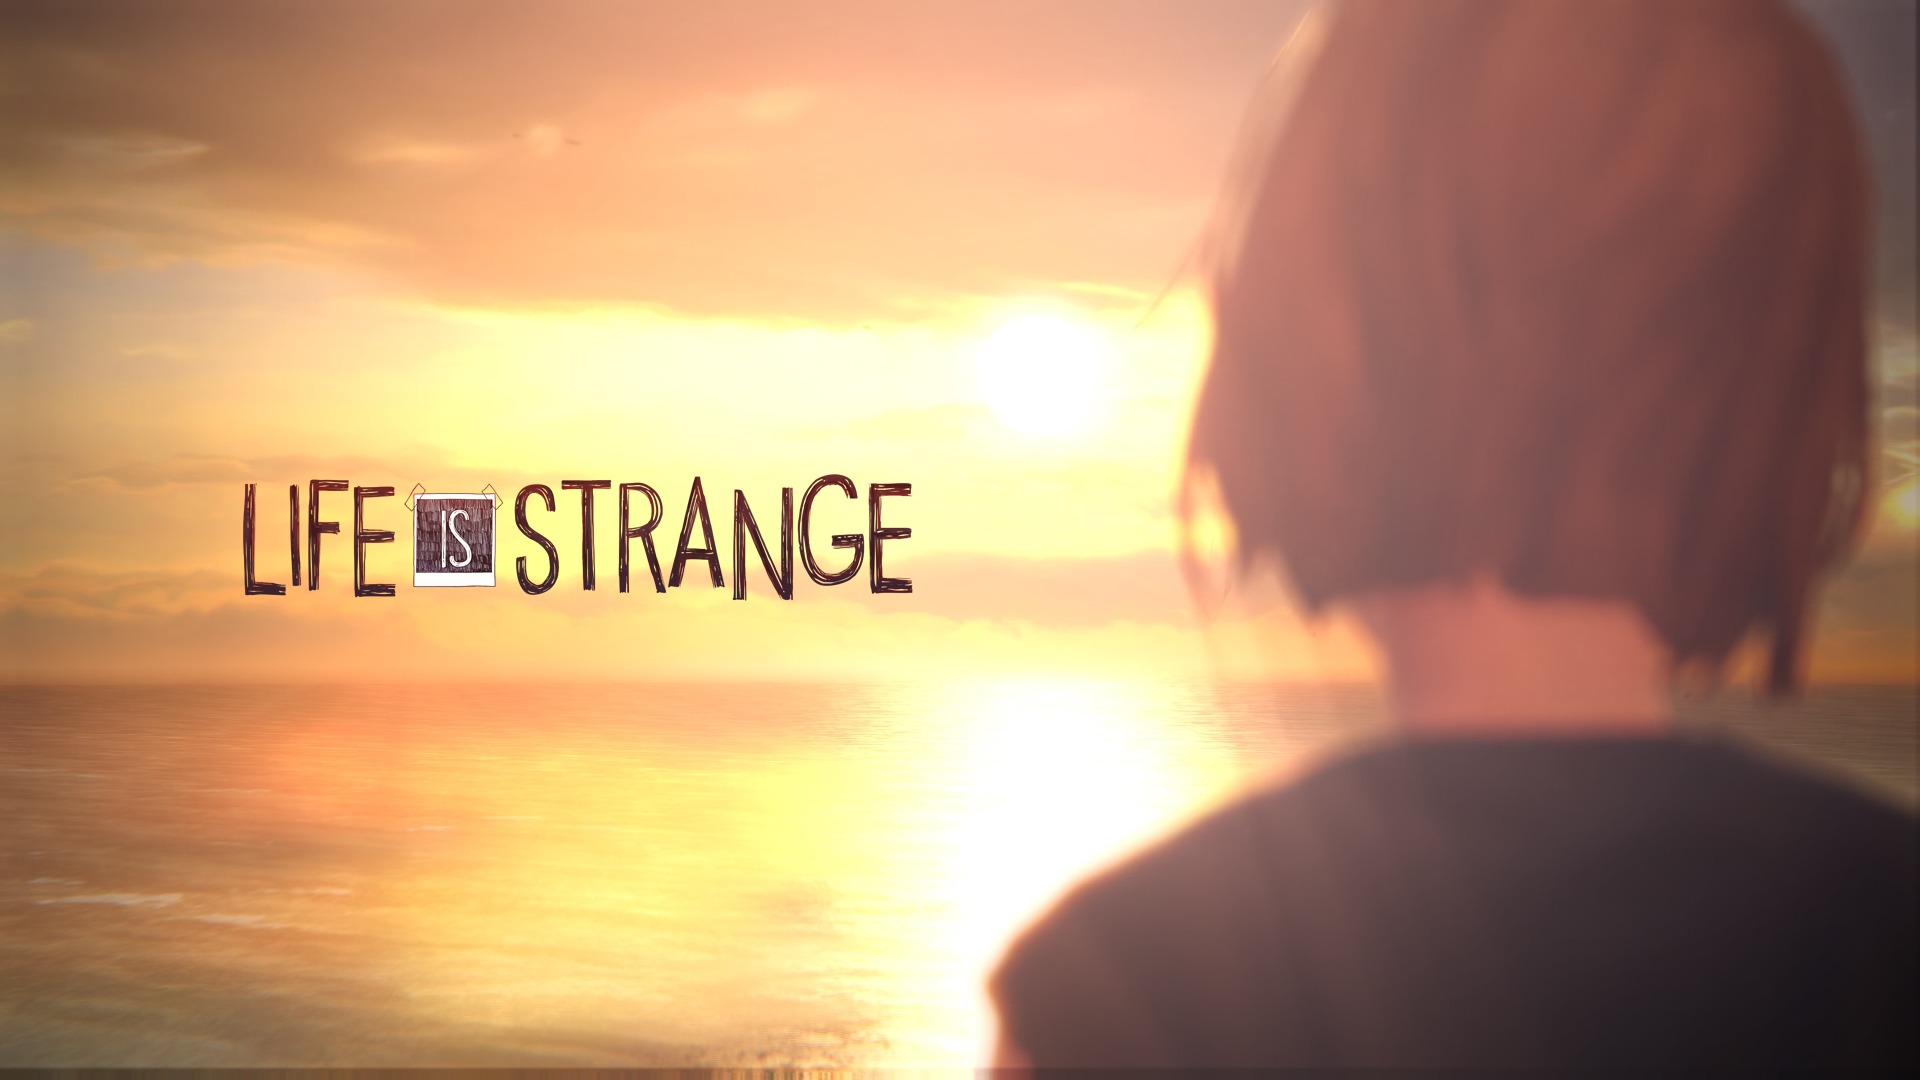 life is strange wallpaper android